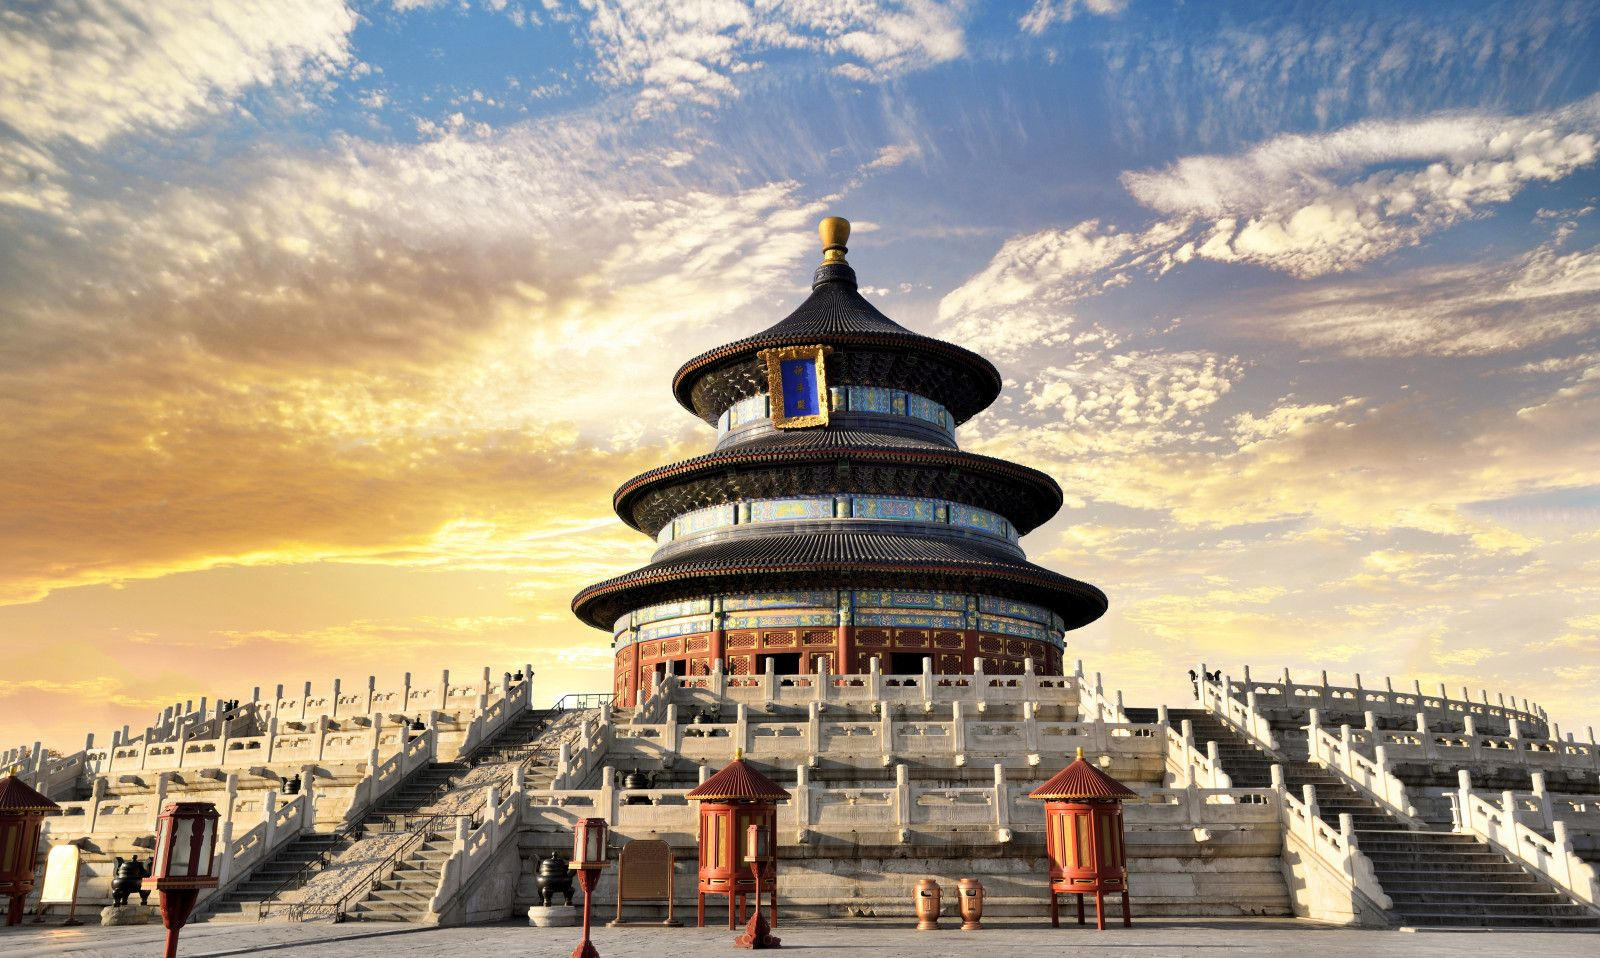 Картинки по запросу temple of heaven beijing site:pinterest.com